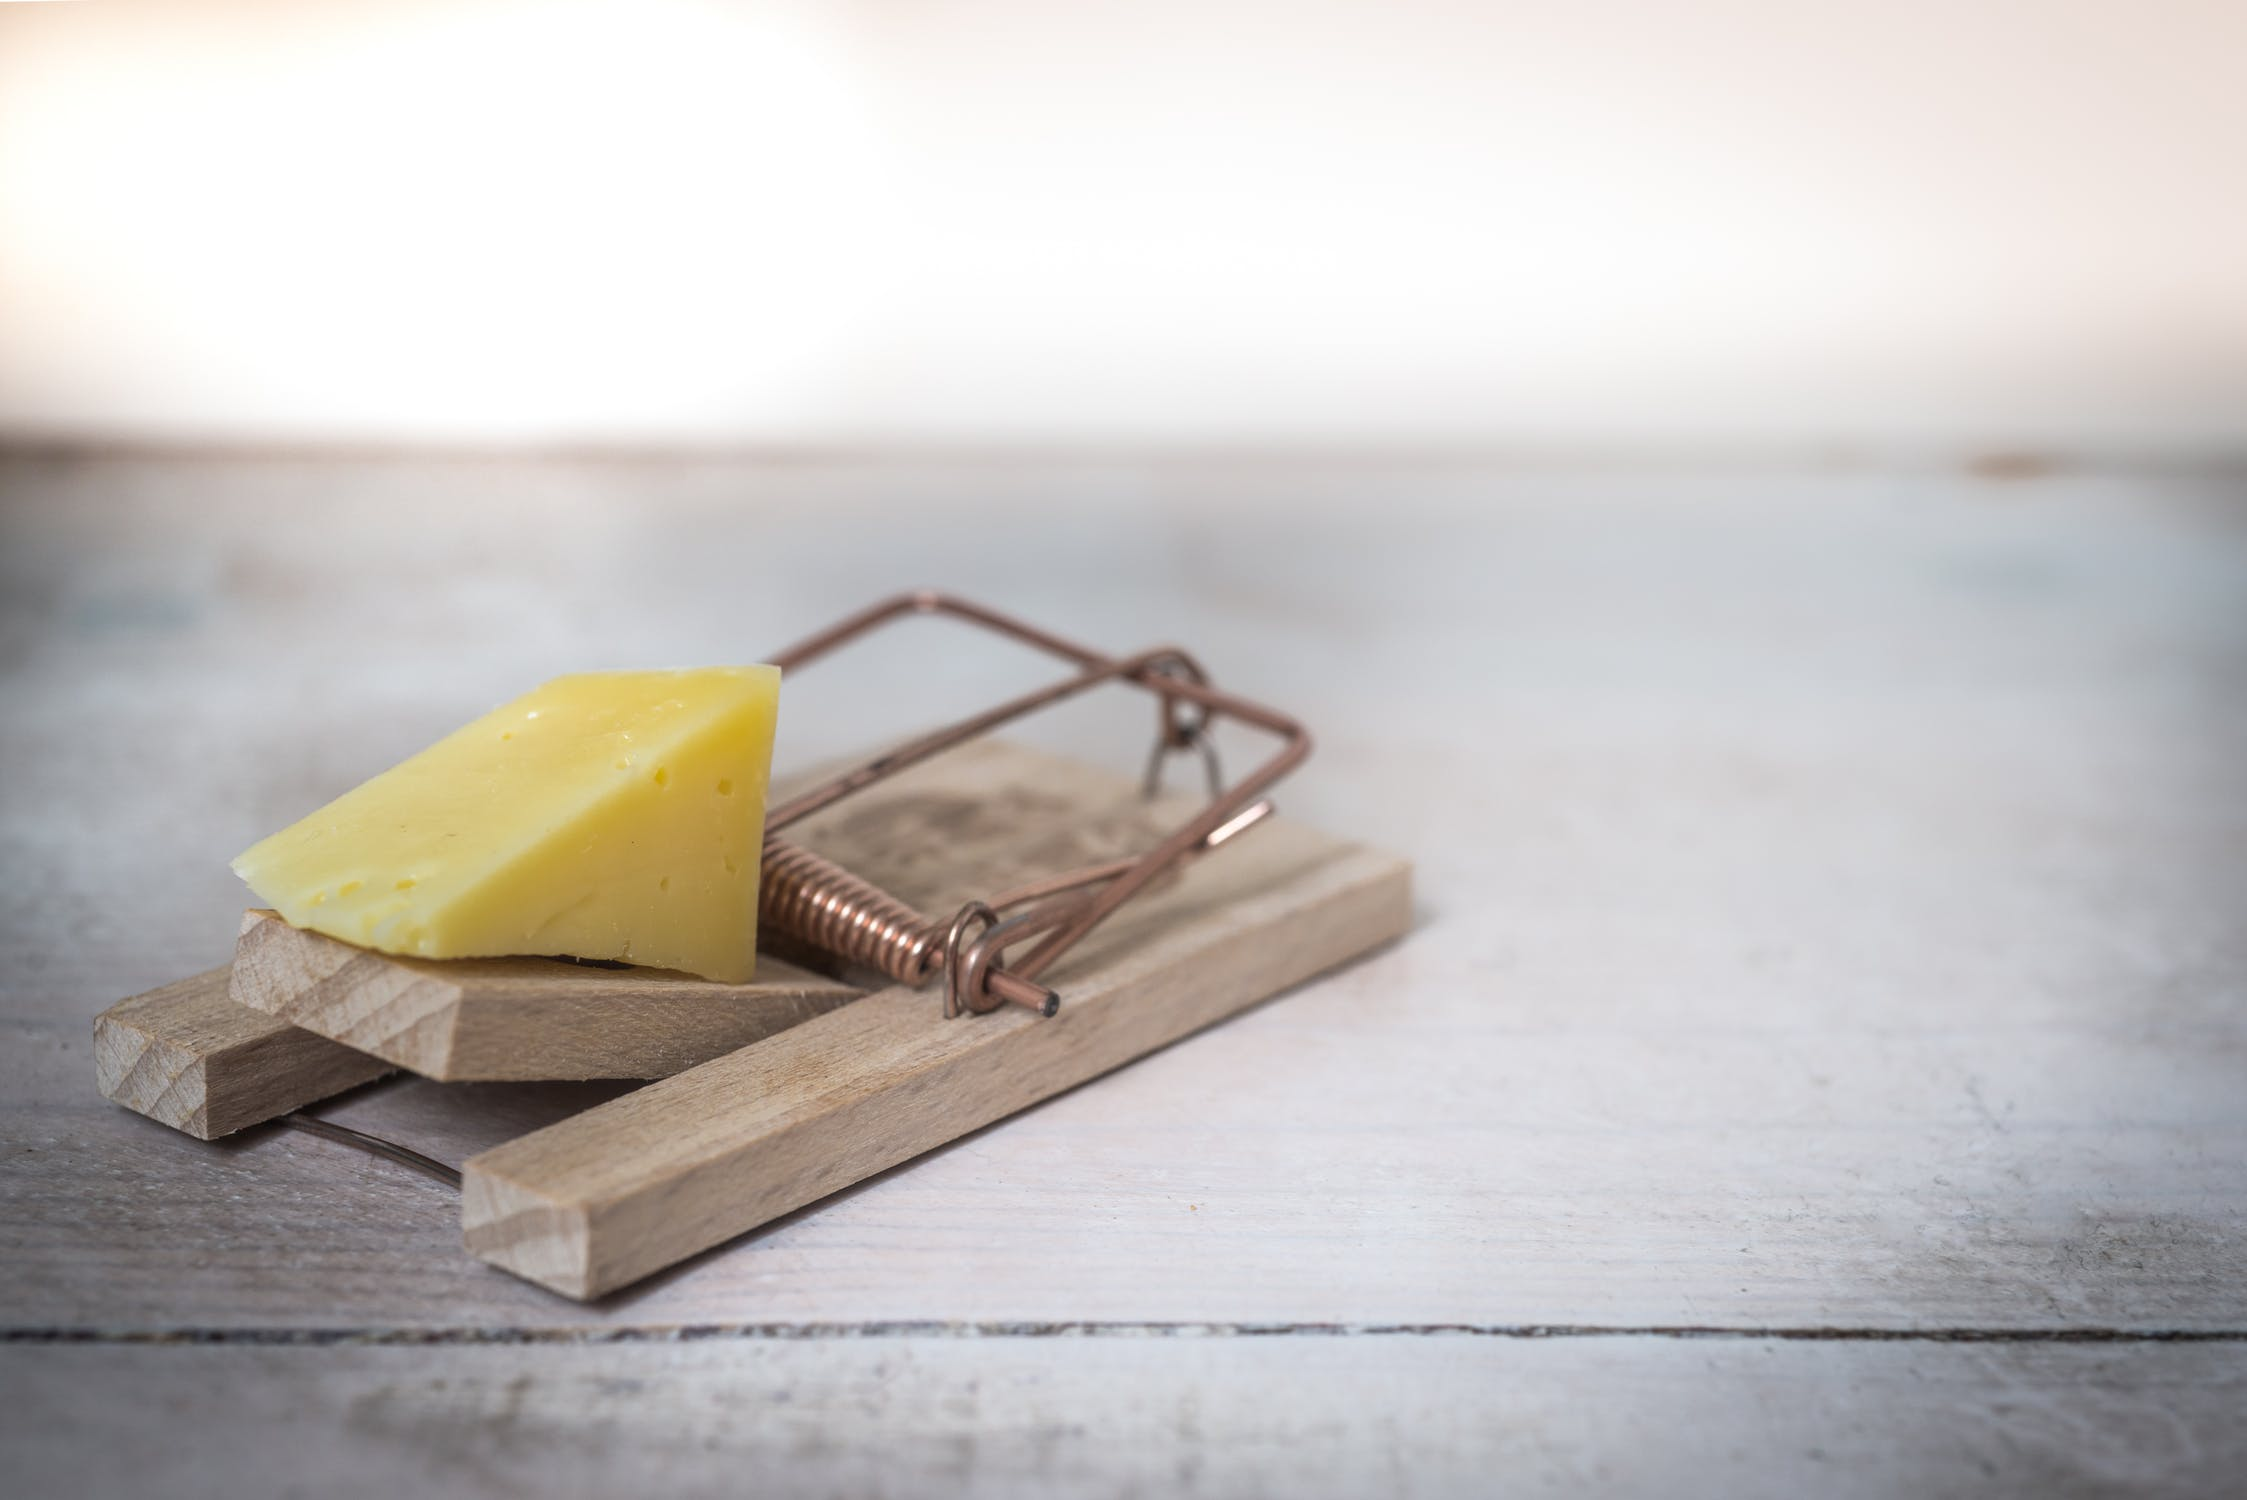 mouse-trap-cheese-device-trap-633881